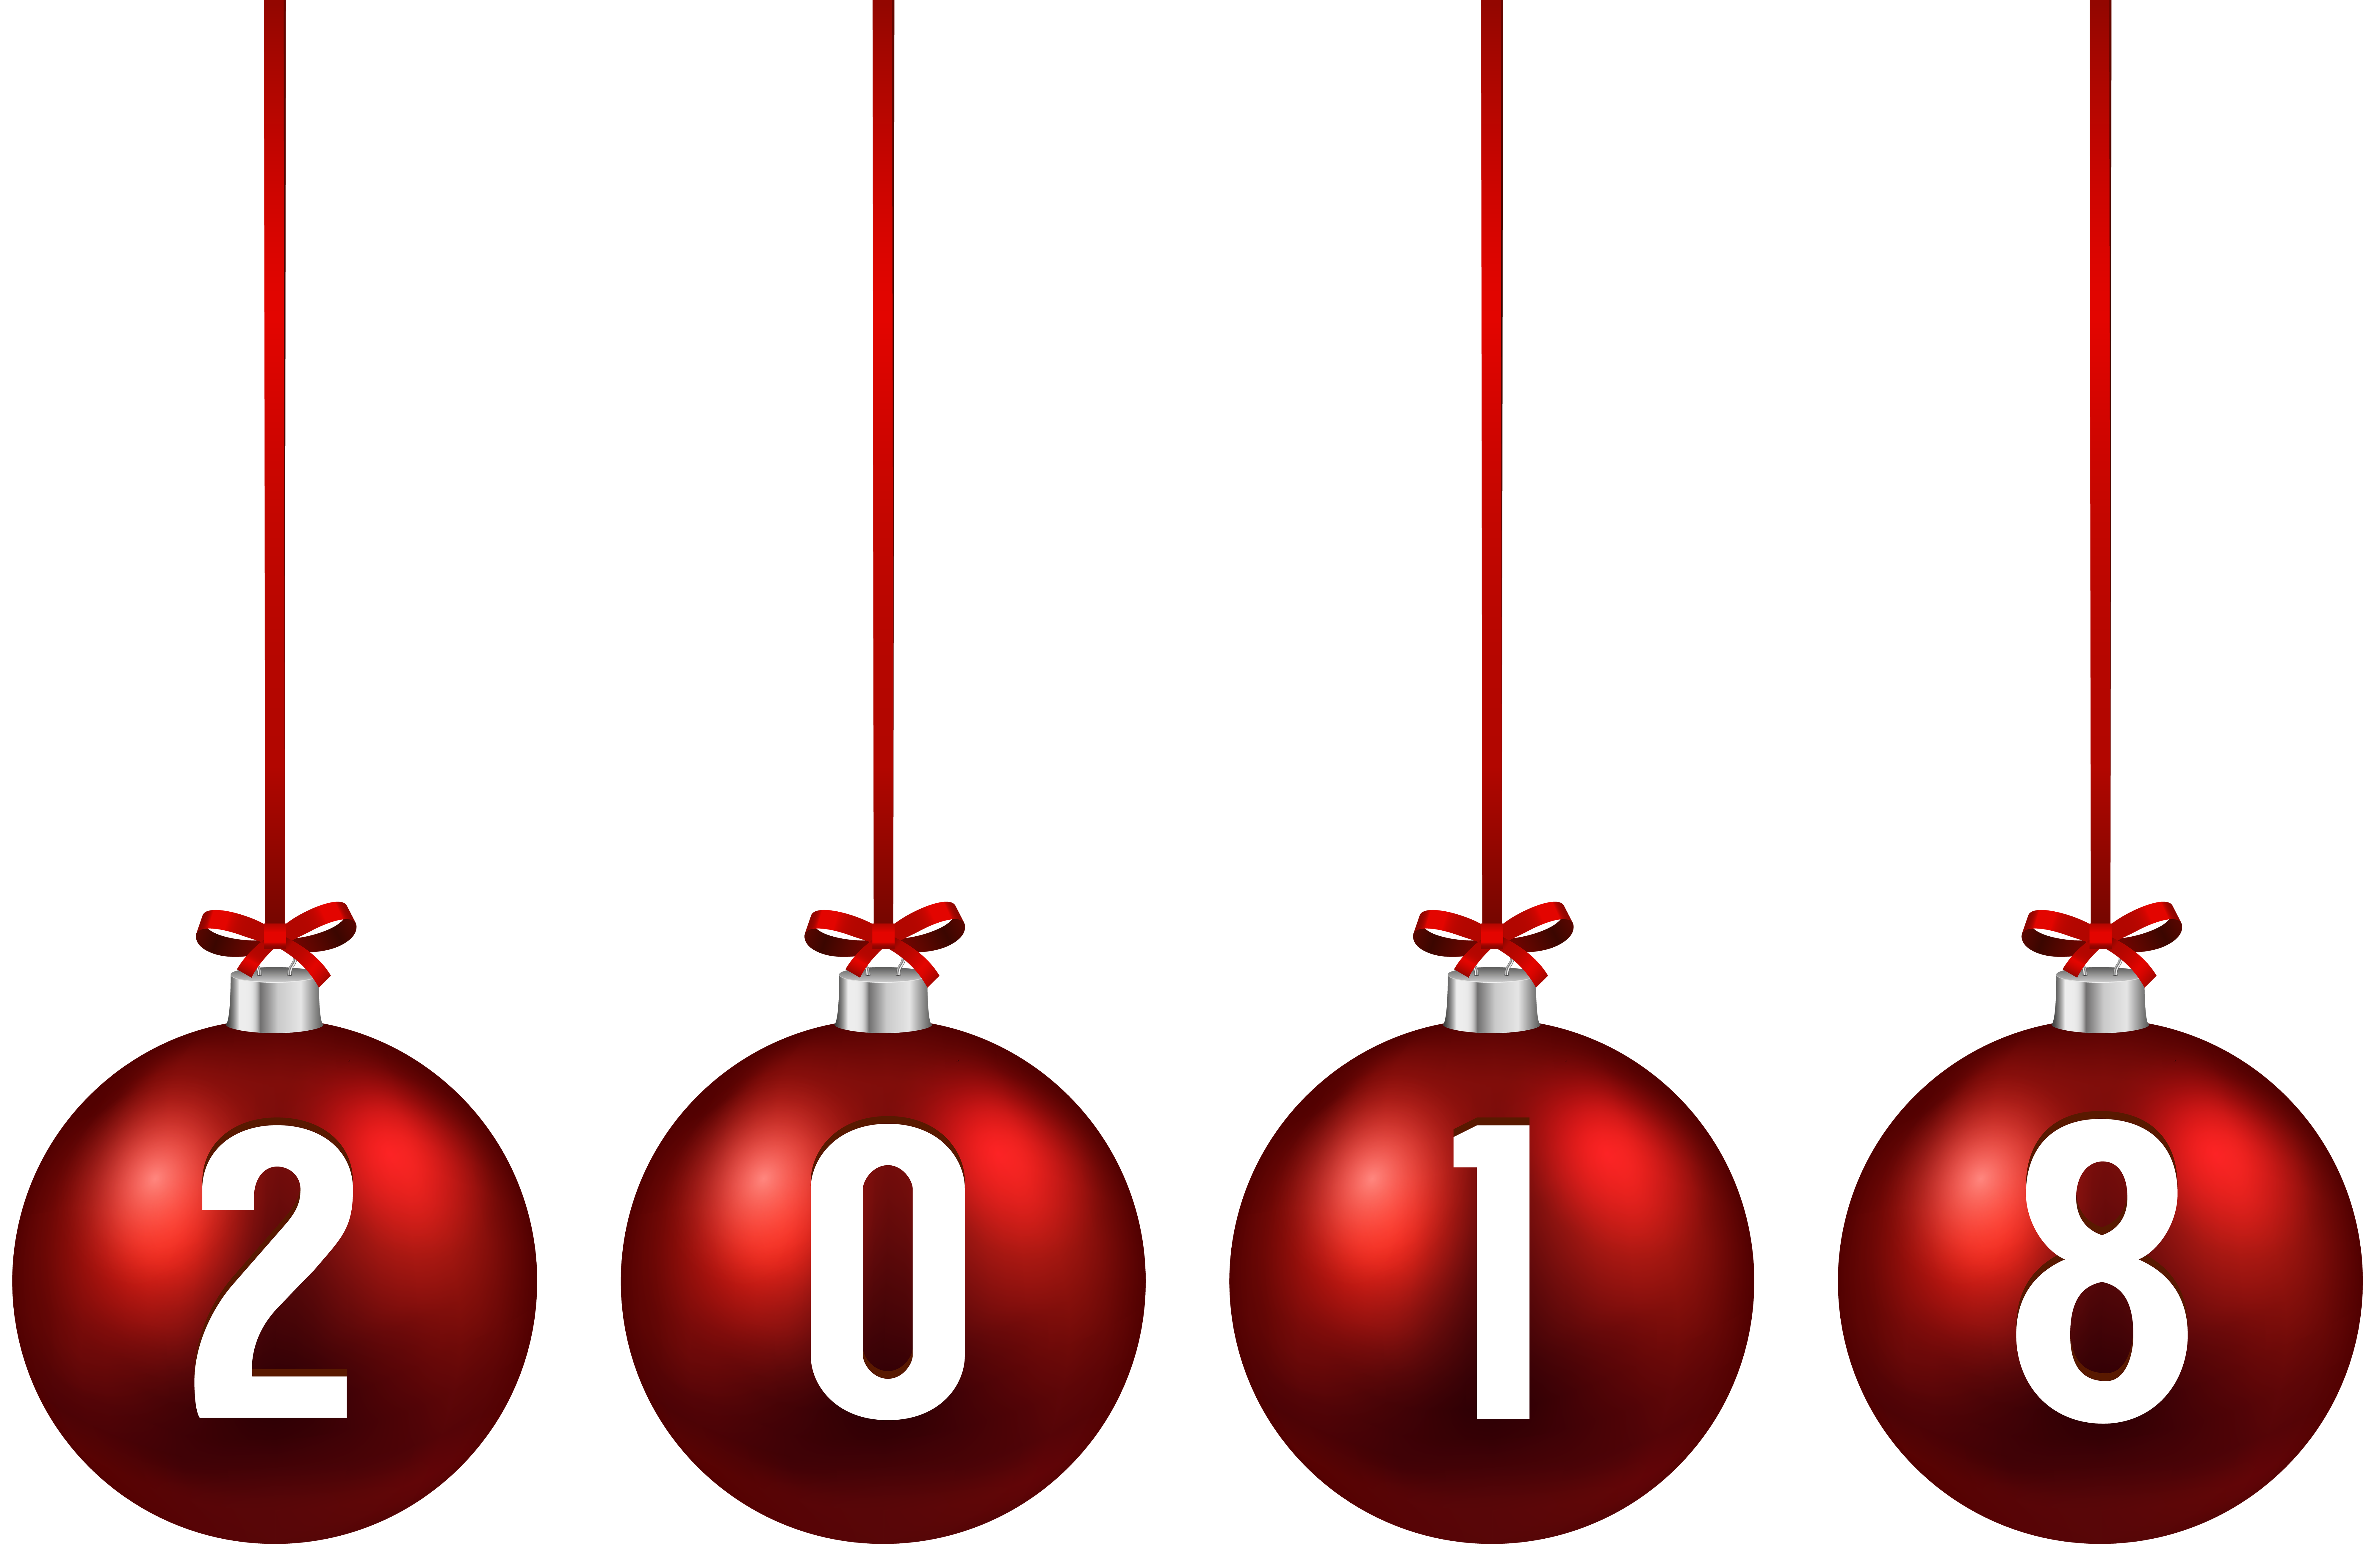 New year ornaments png. Christmas ornament clip art